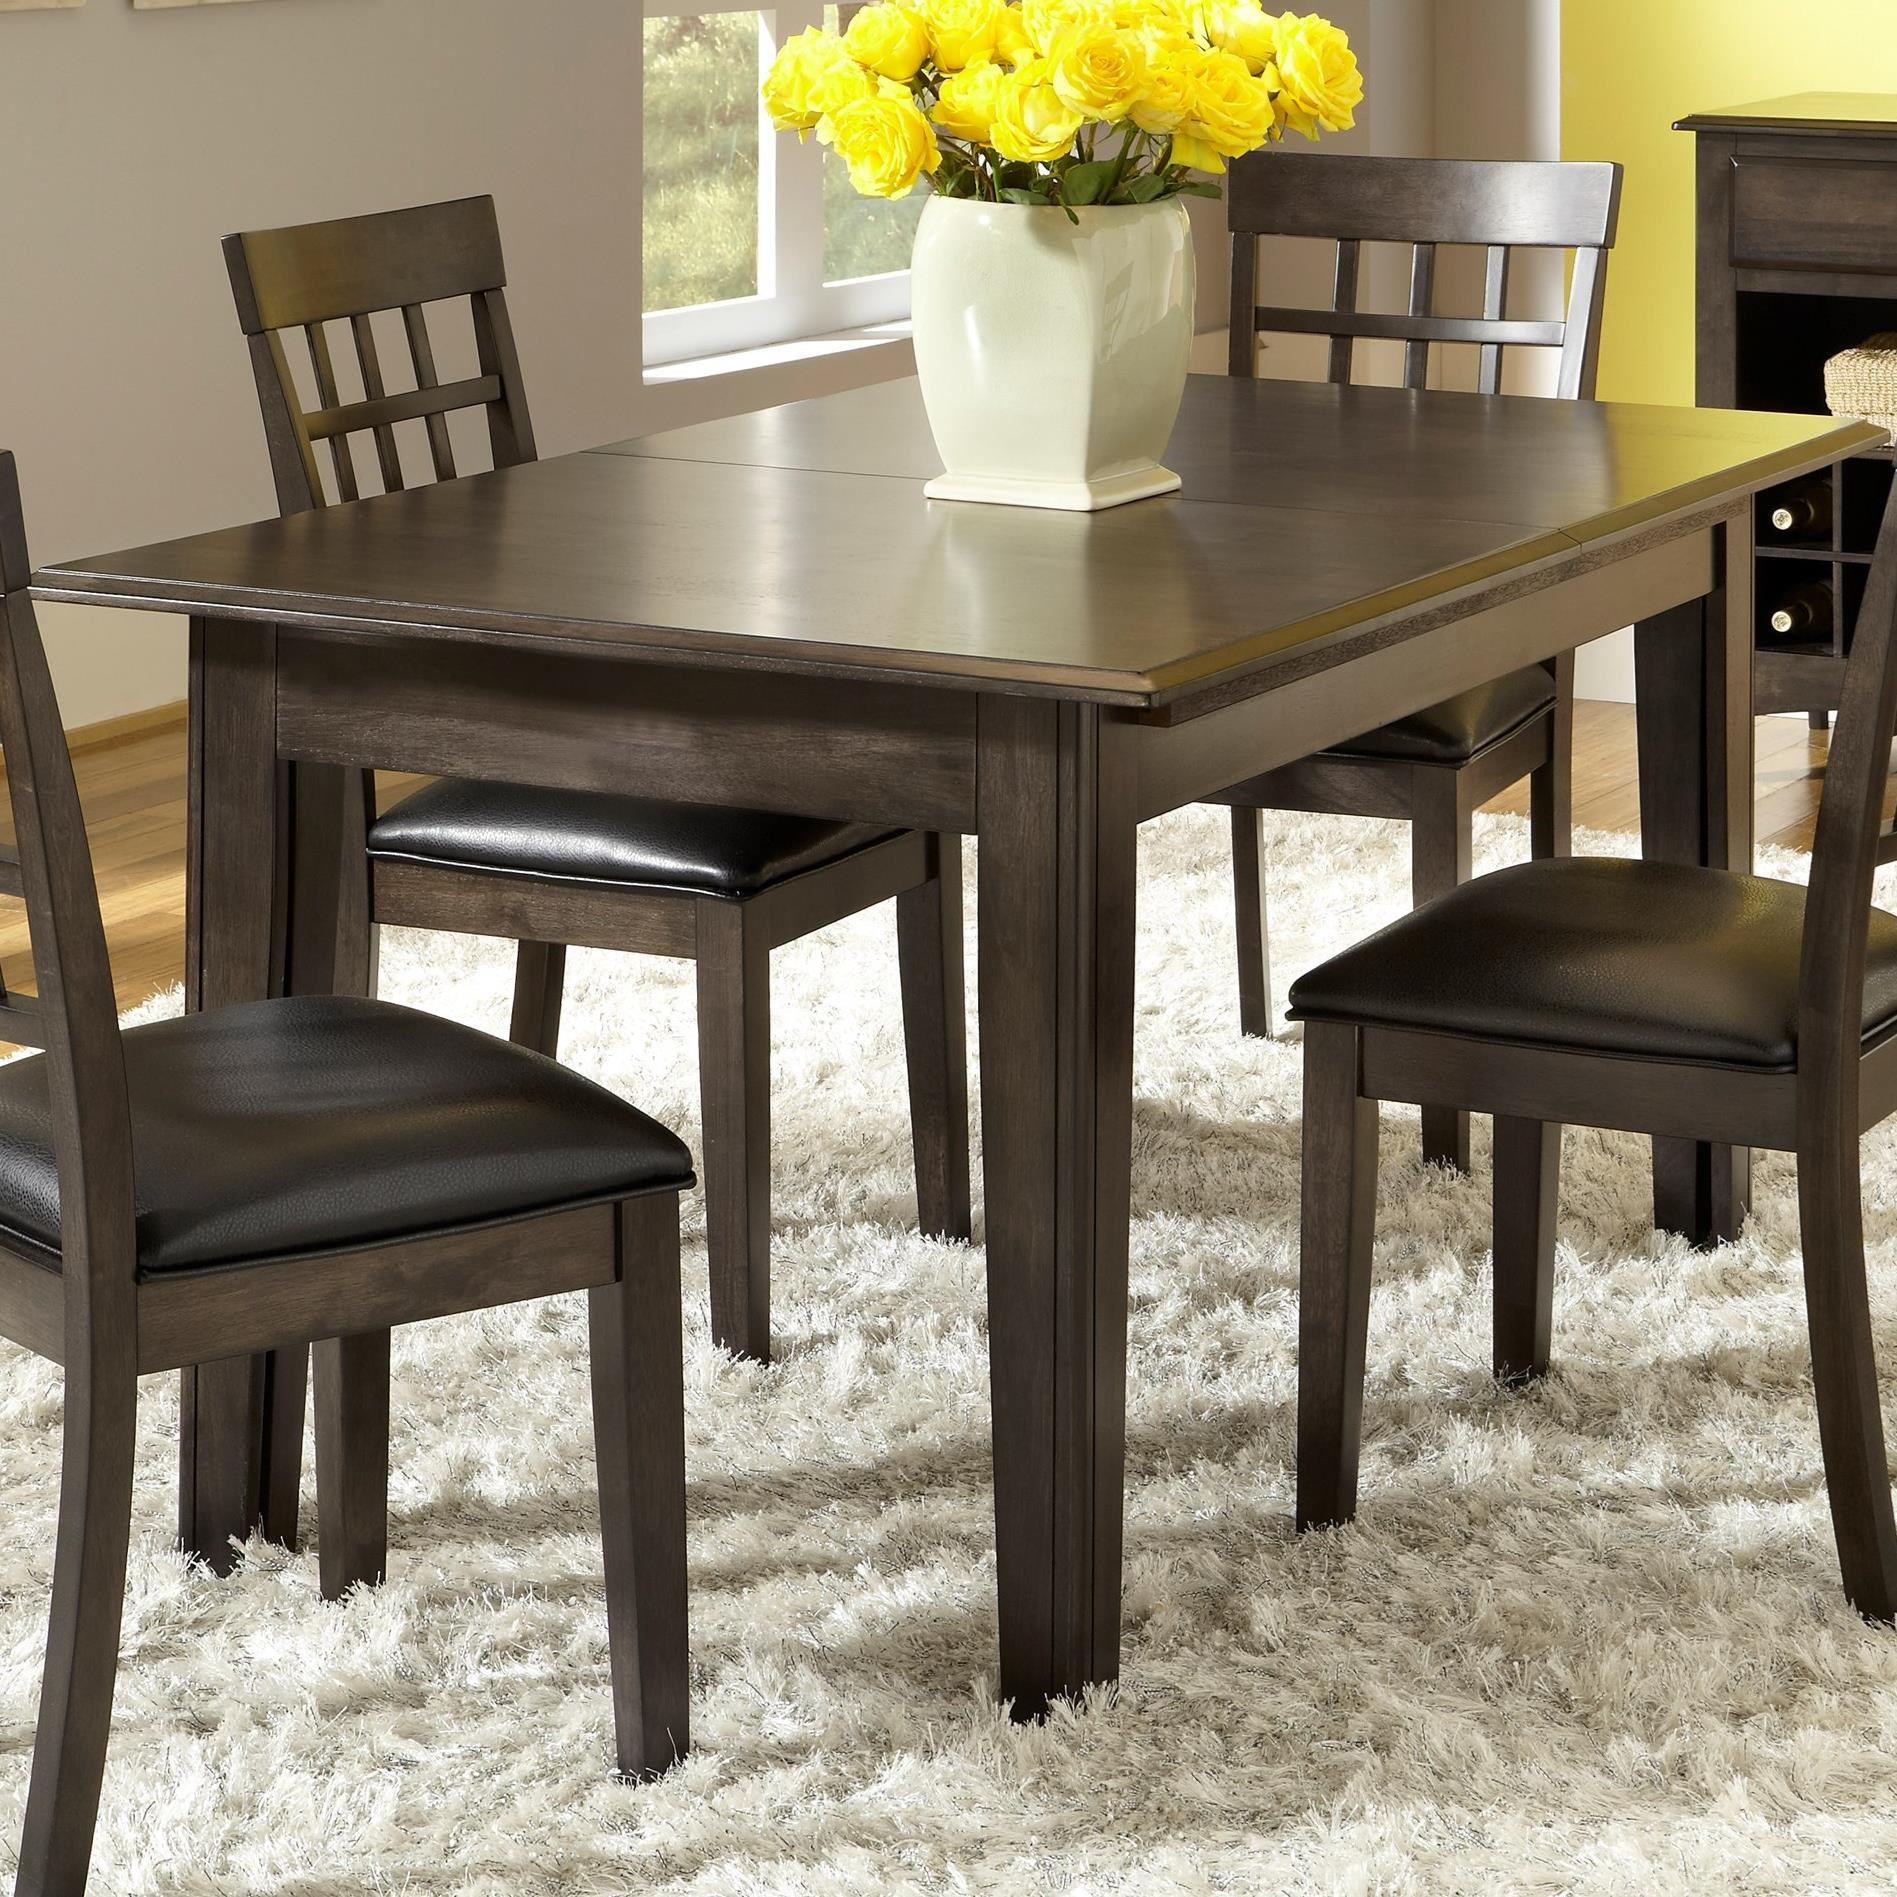 Bristol Point - WG Vers-A-Table With 3 Leaves by A-A at Walker's Furniture